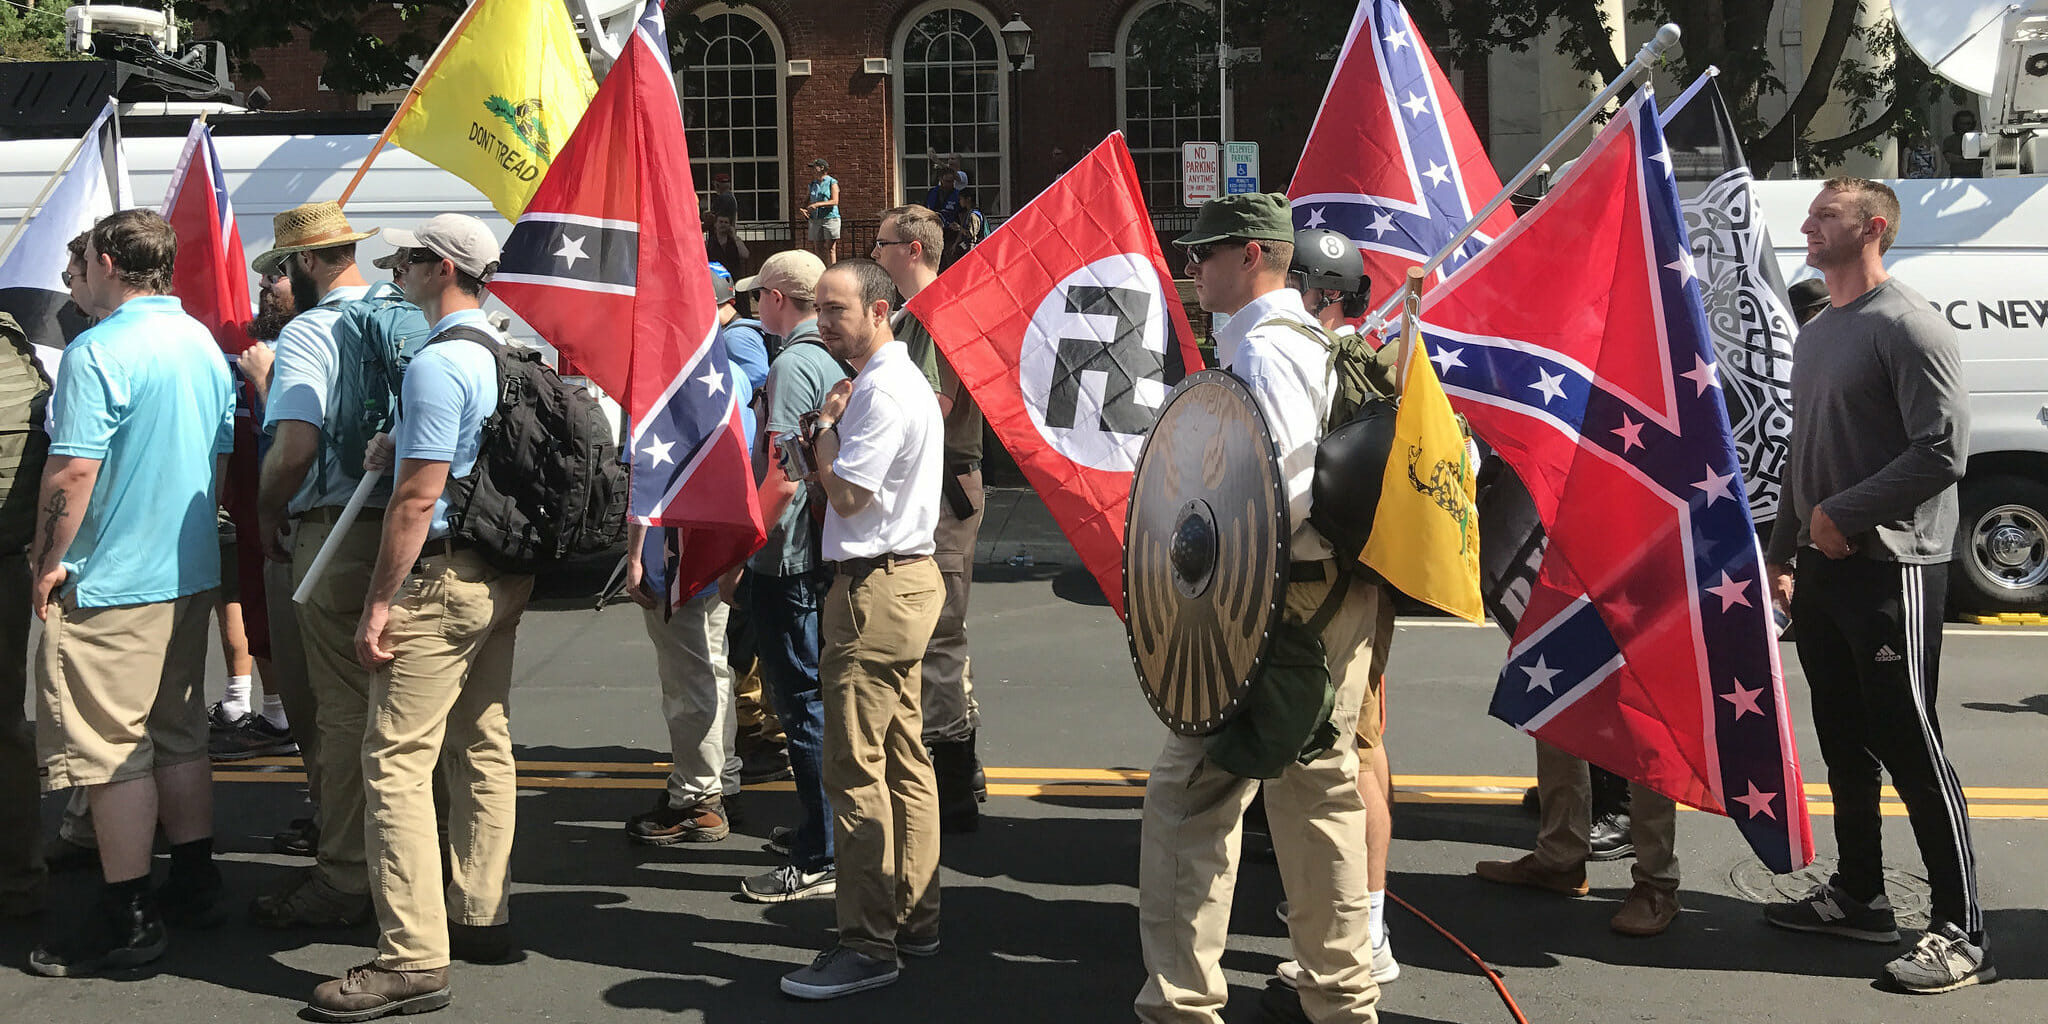 Unite the Right rally in Charlottesville, Virginia